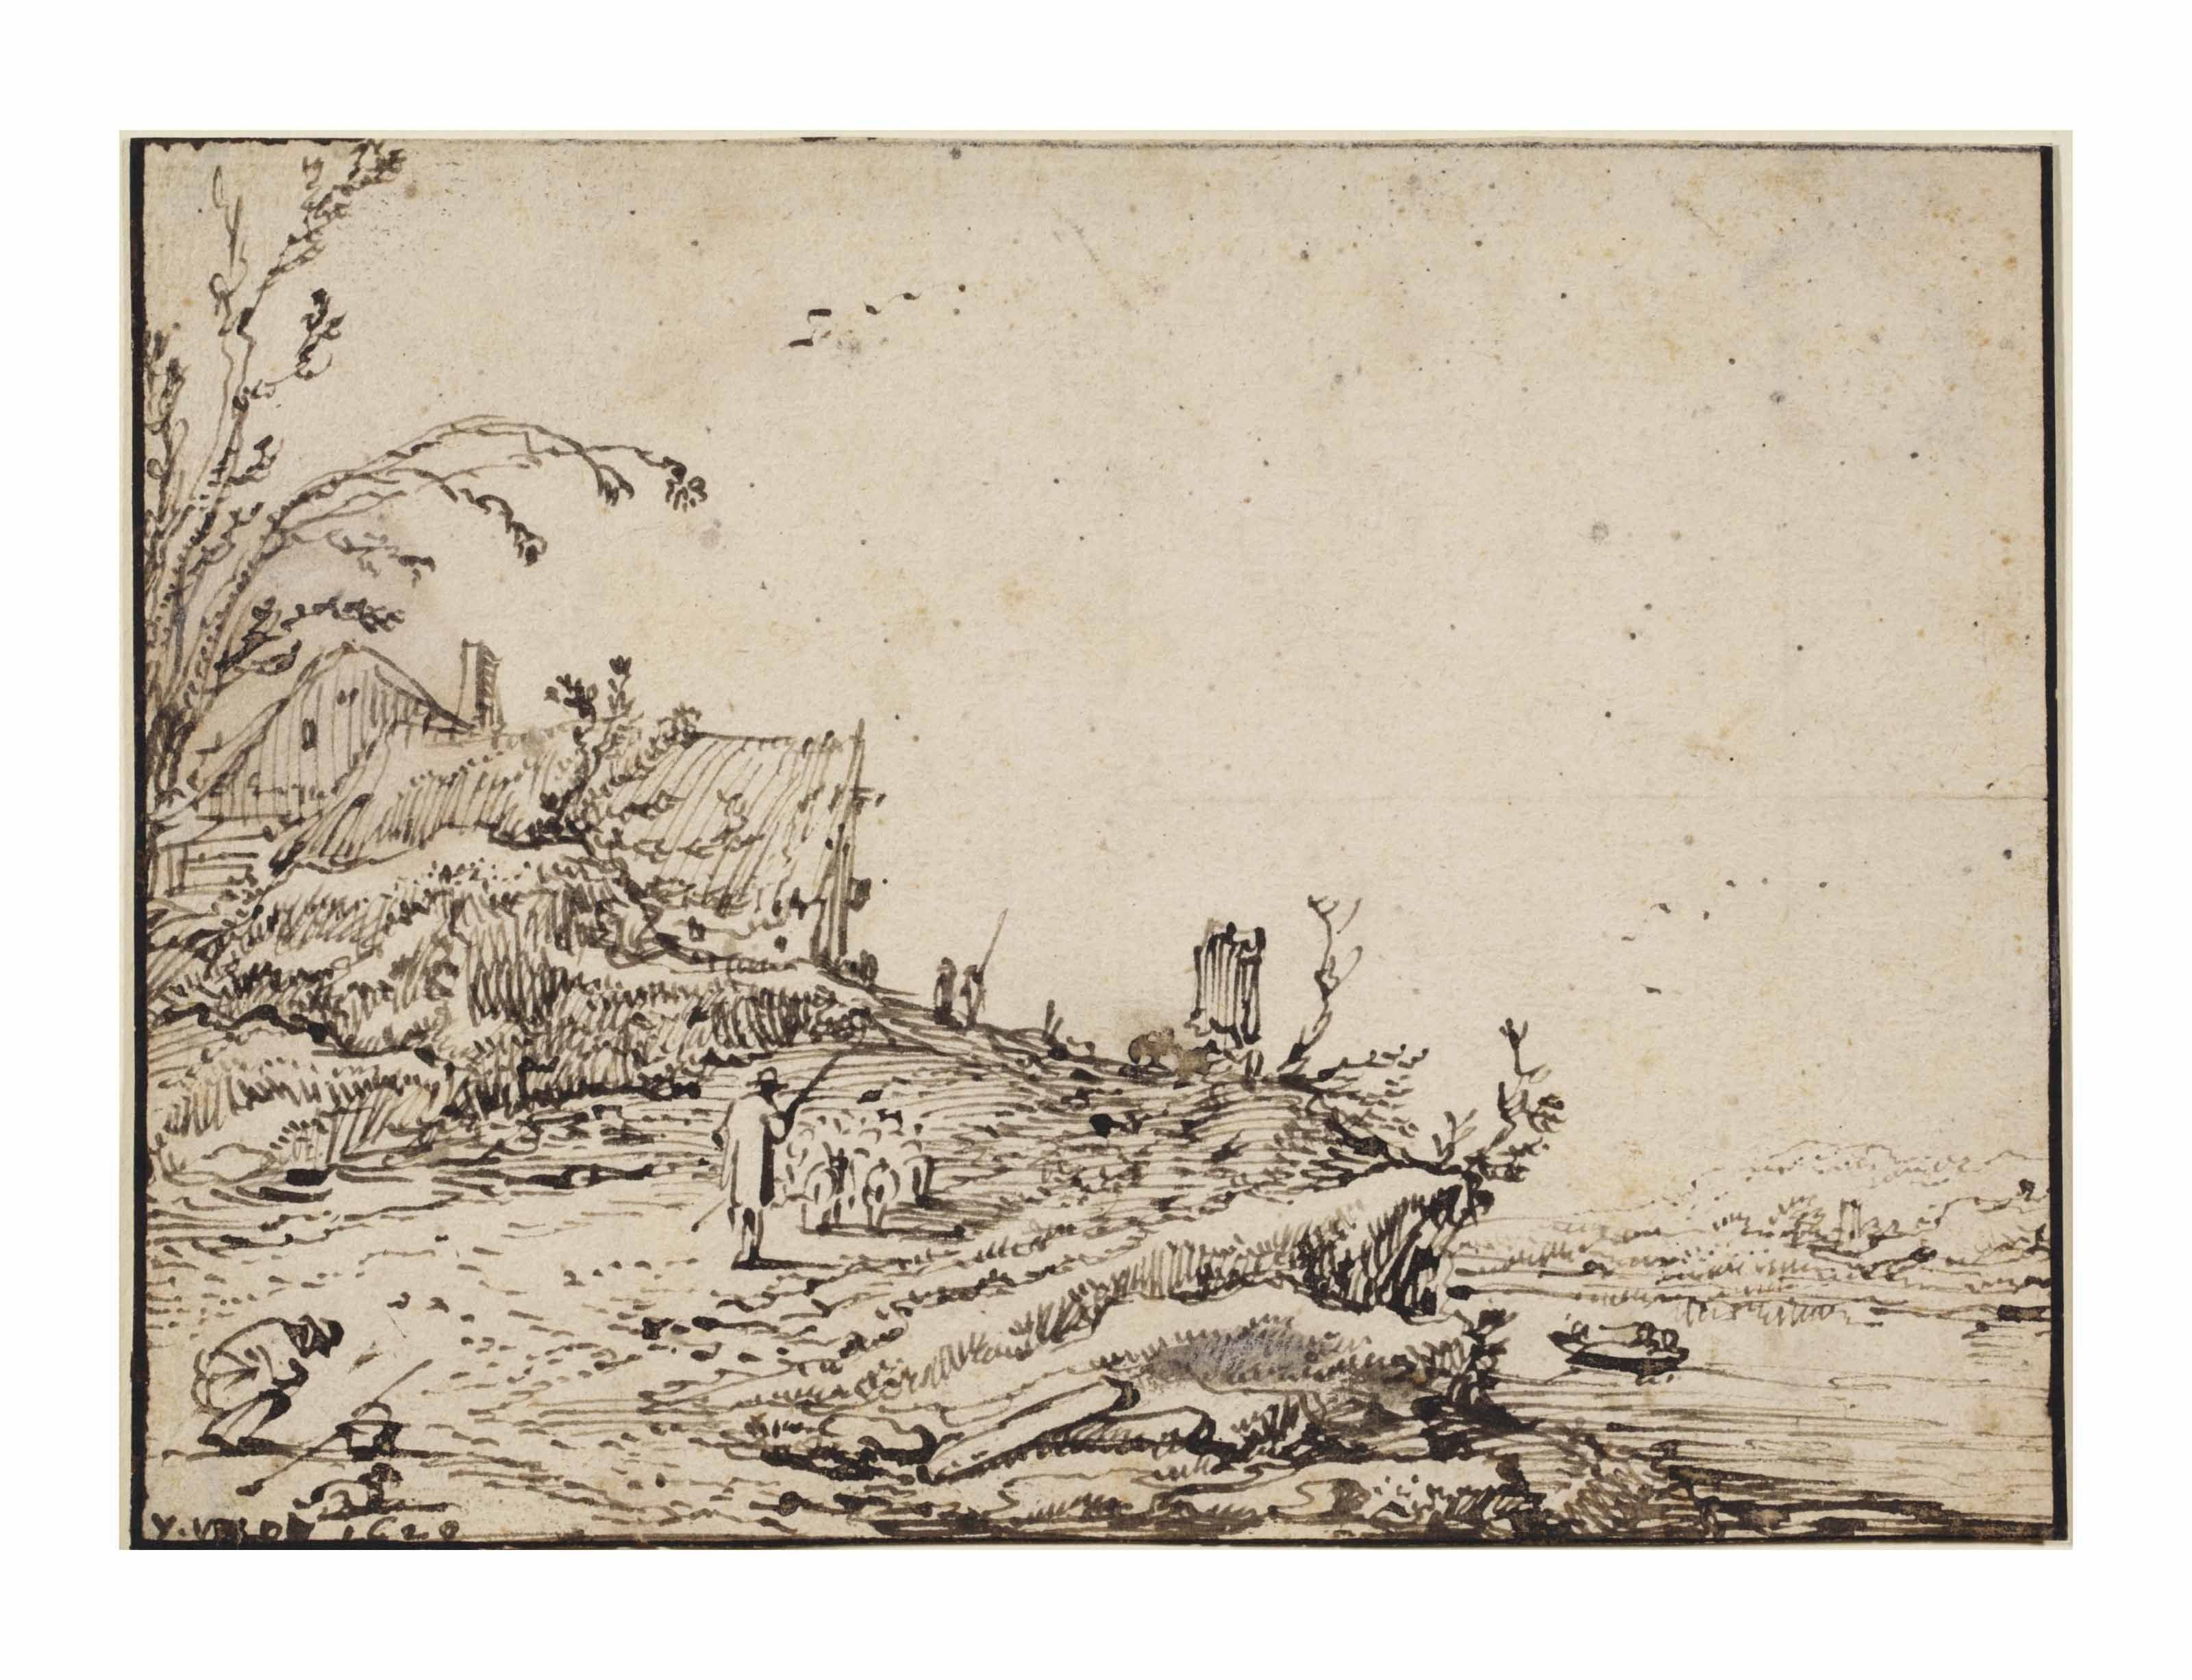 A river landscape with a shepherd driving sheep up a hill towards houses